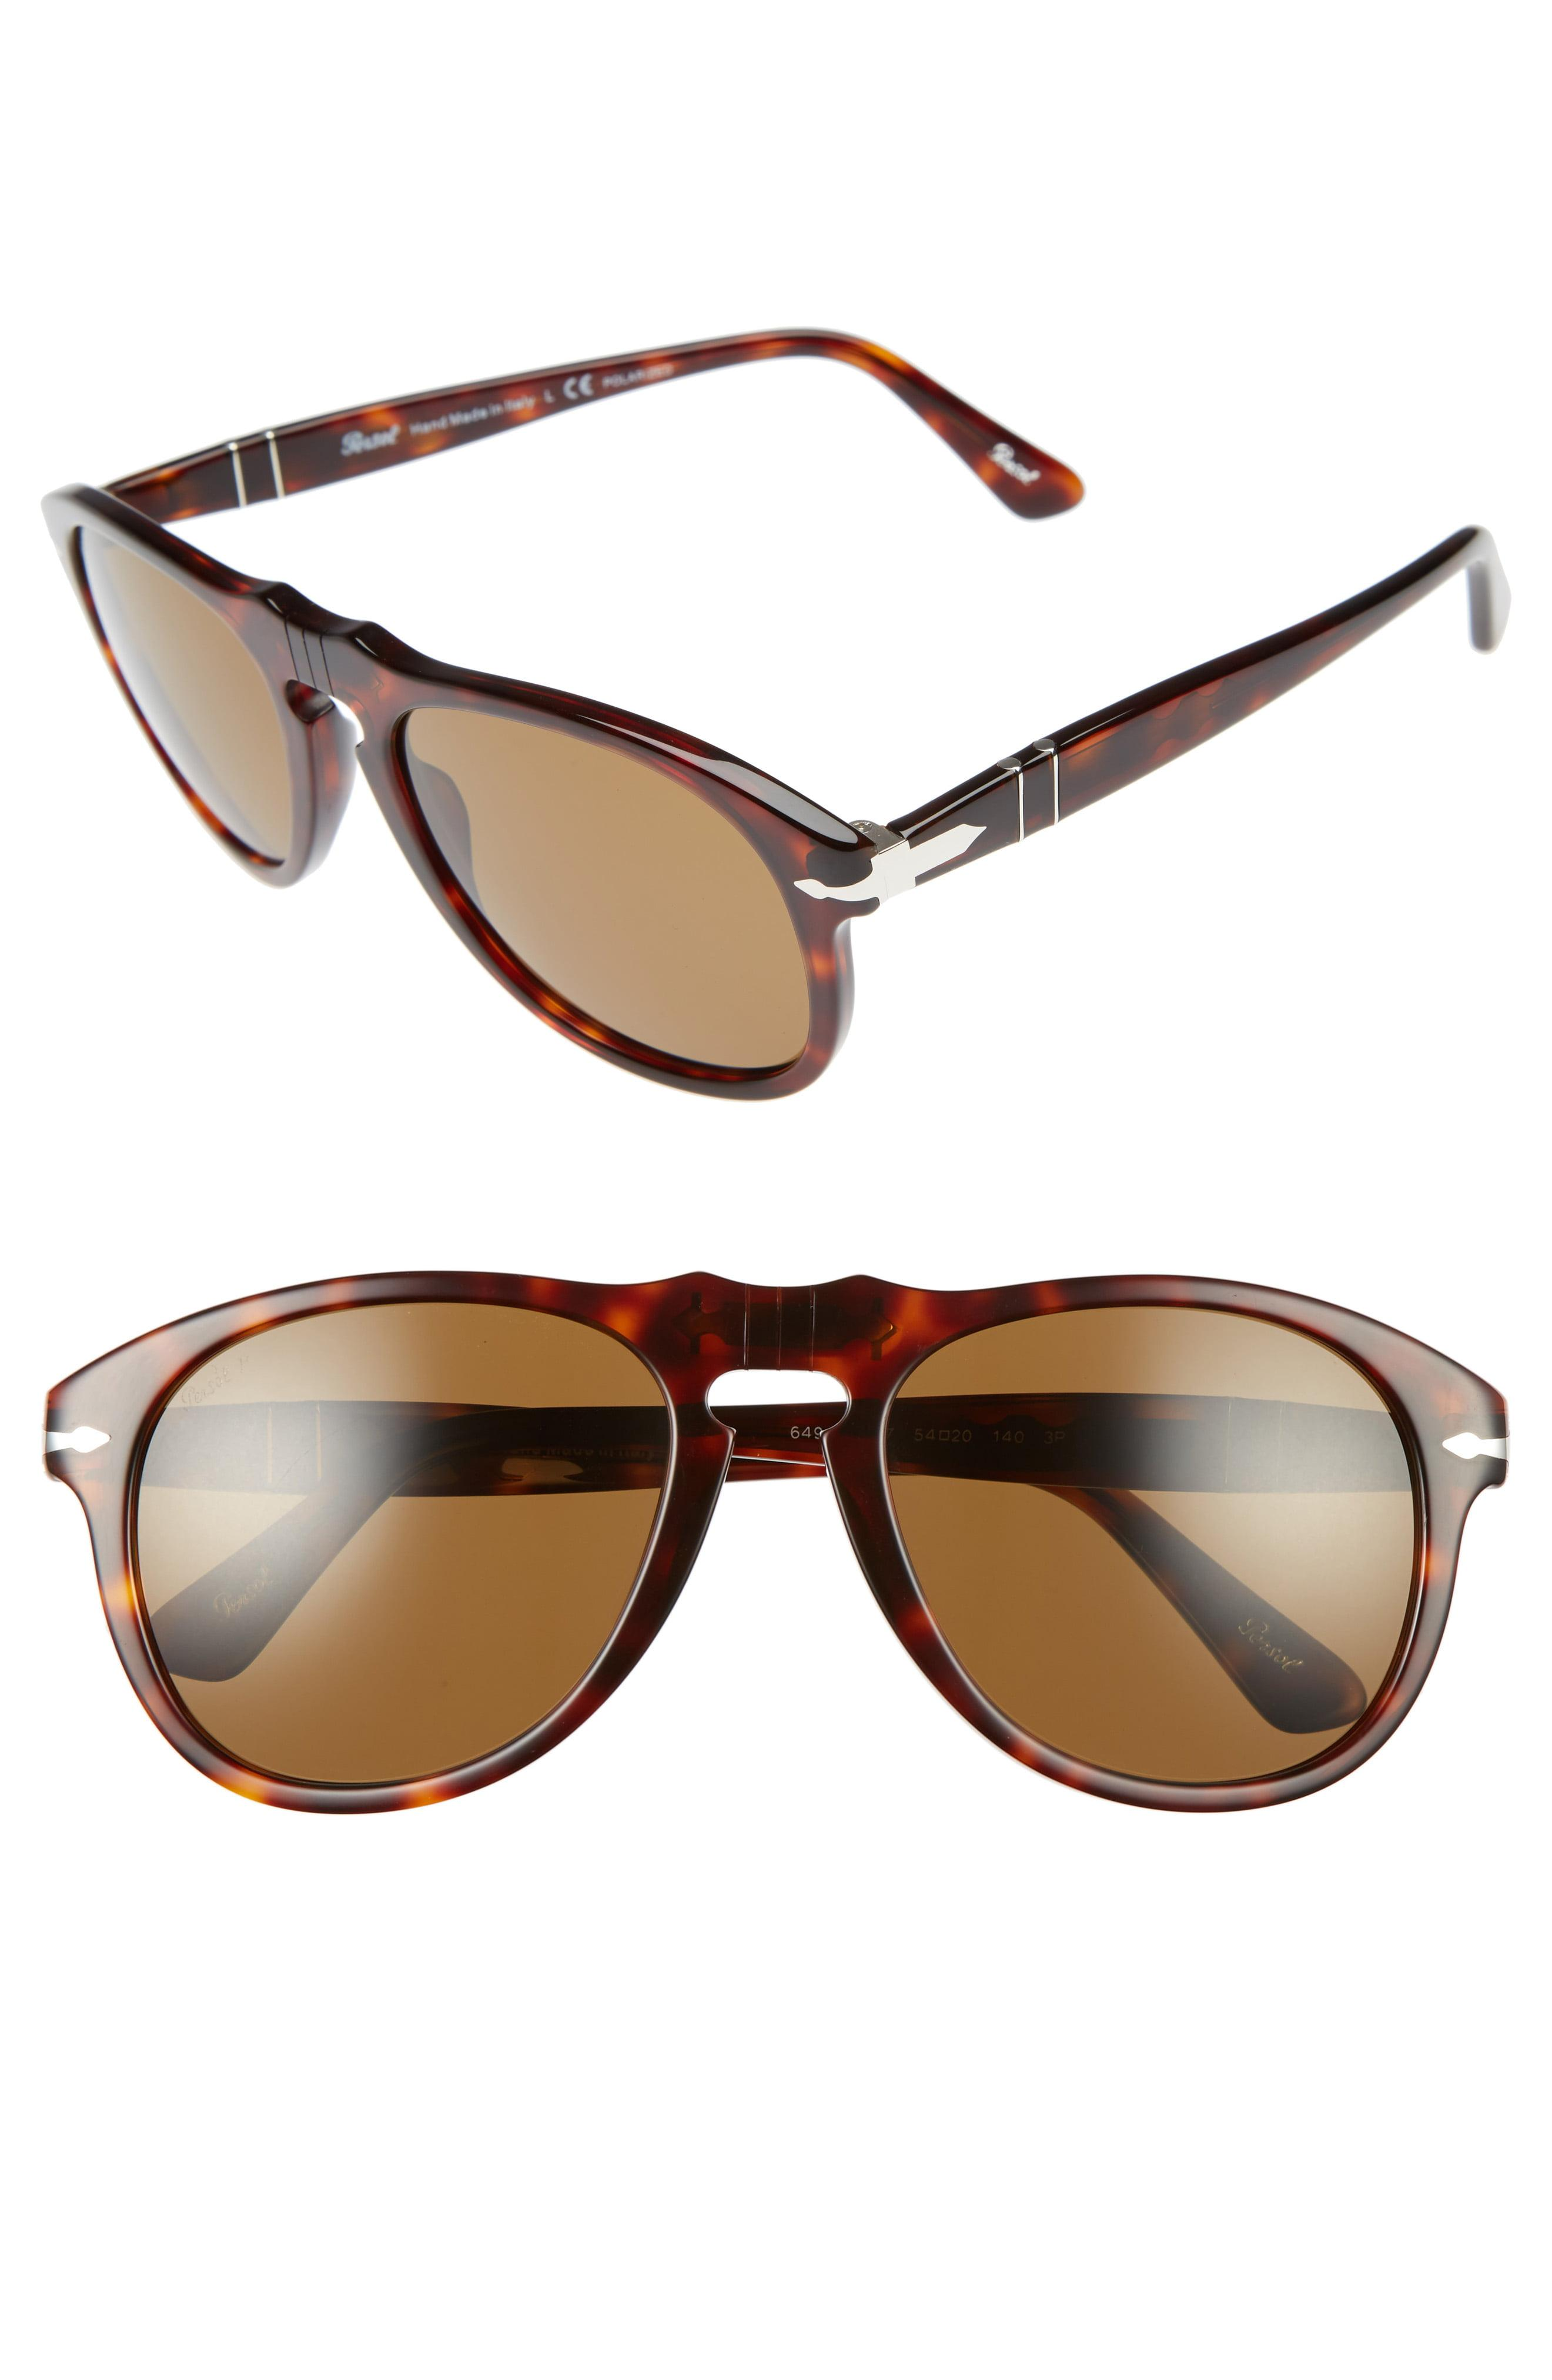 a04dce3edade5 Lyst - Persol 54mm Polarized Keyhole Retro Sunglasses - in Brown for Men